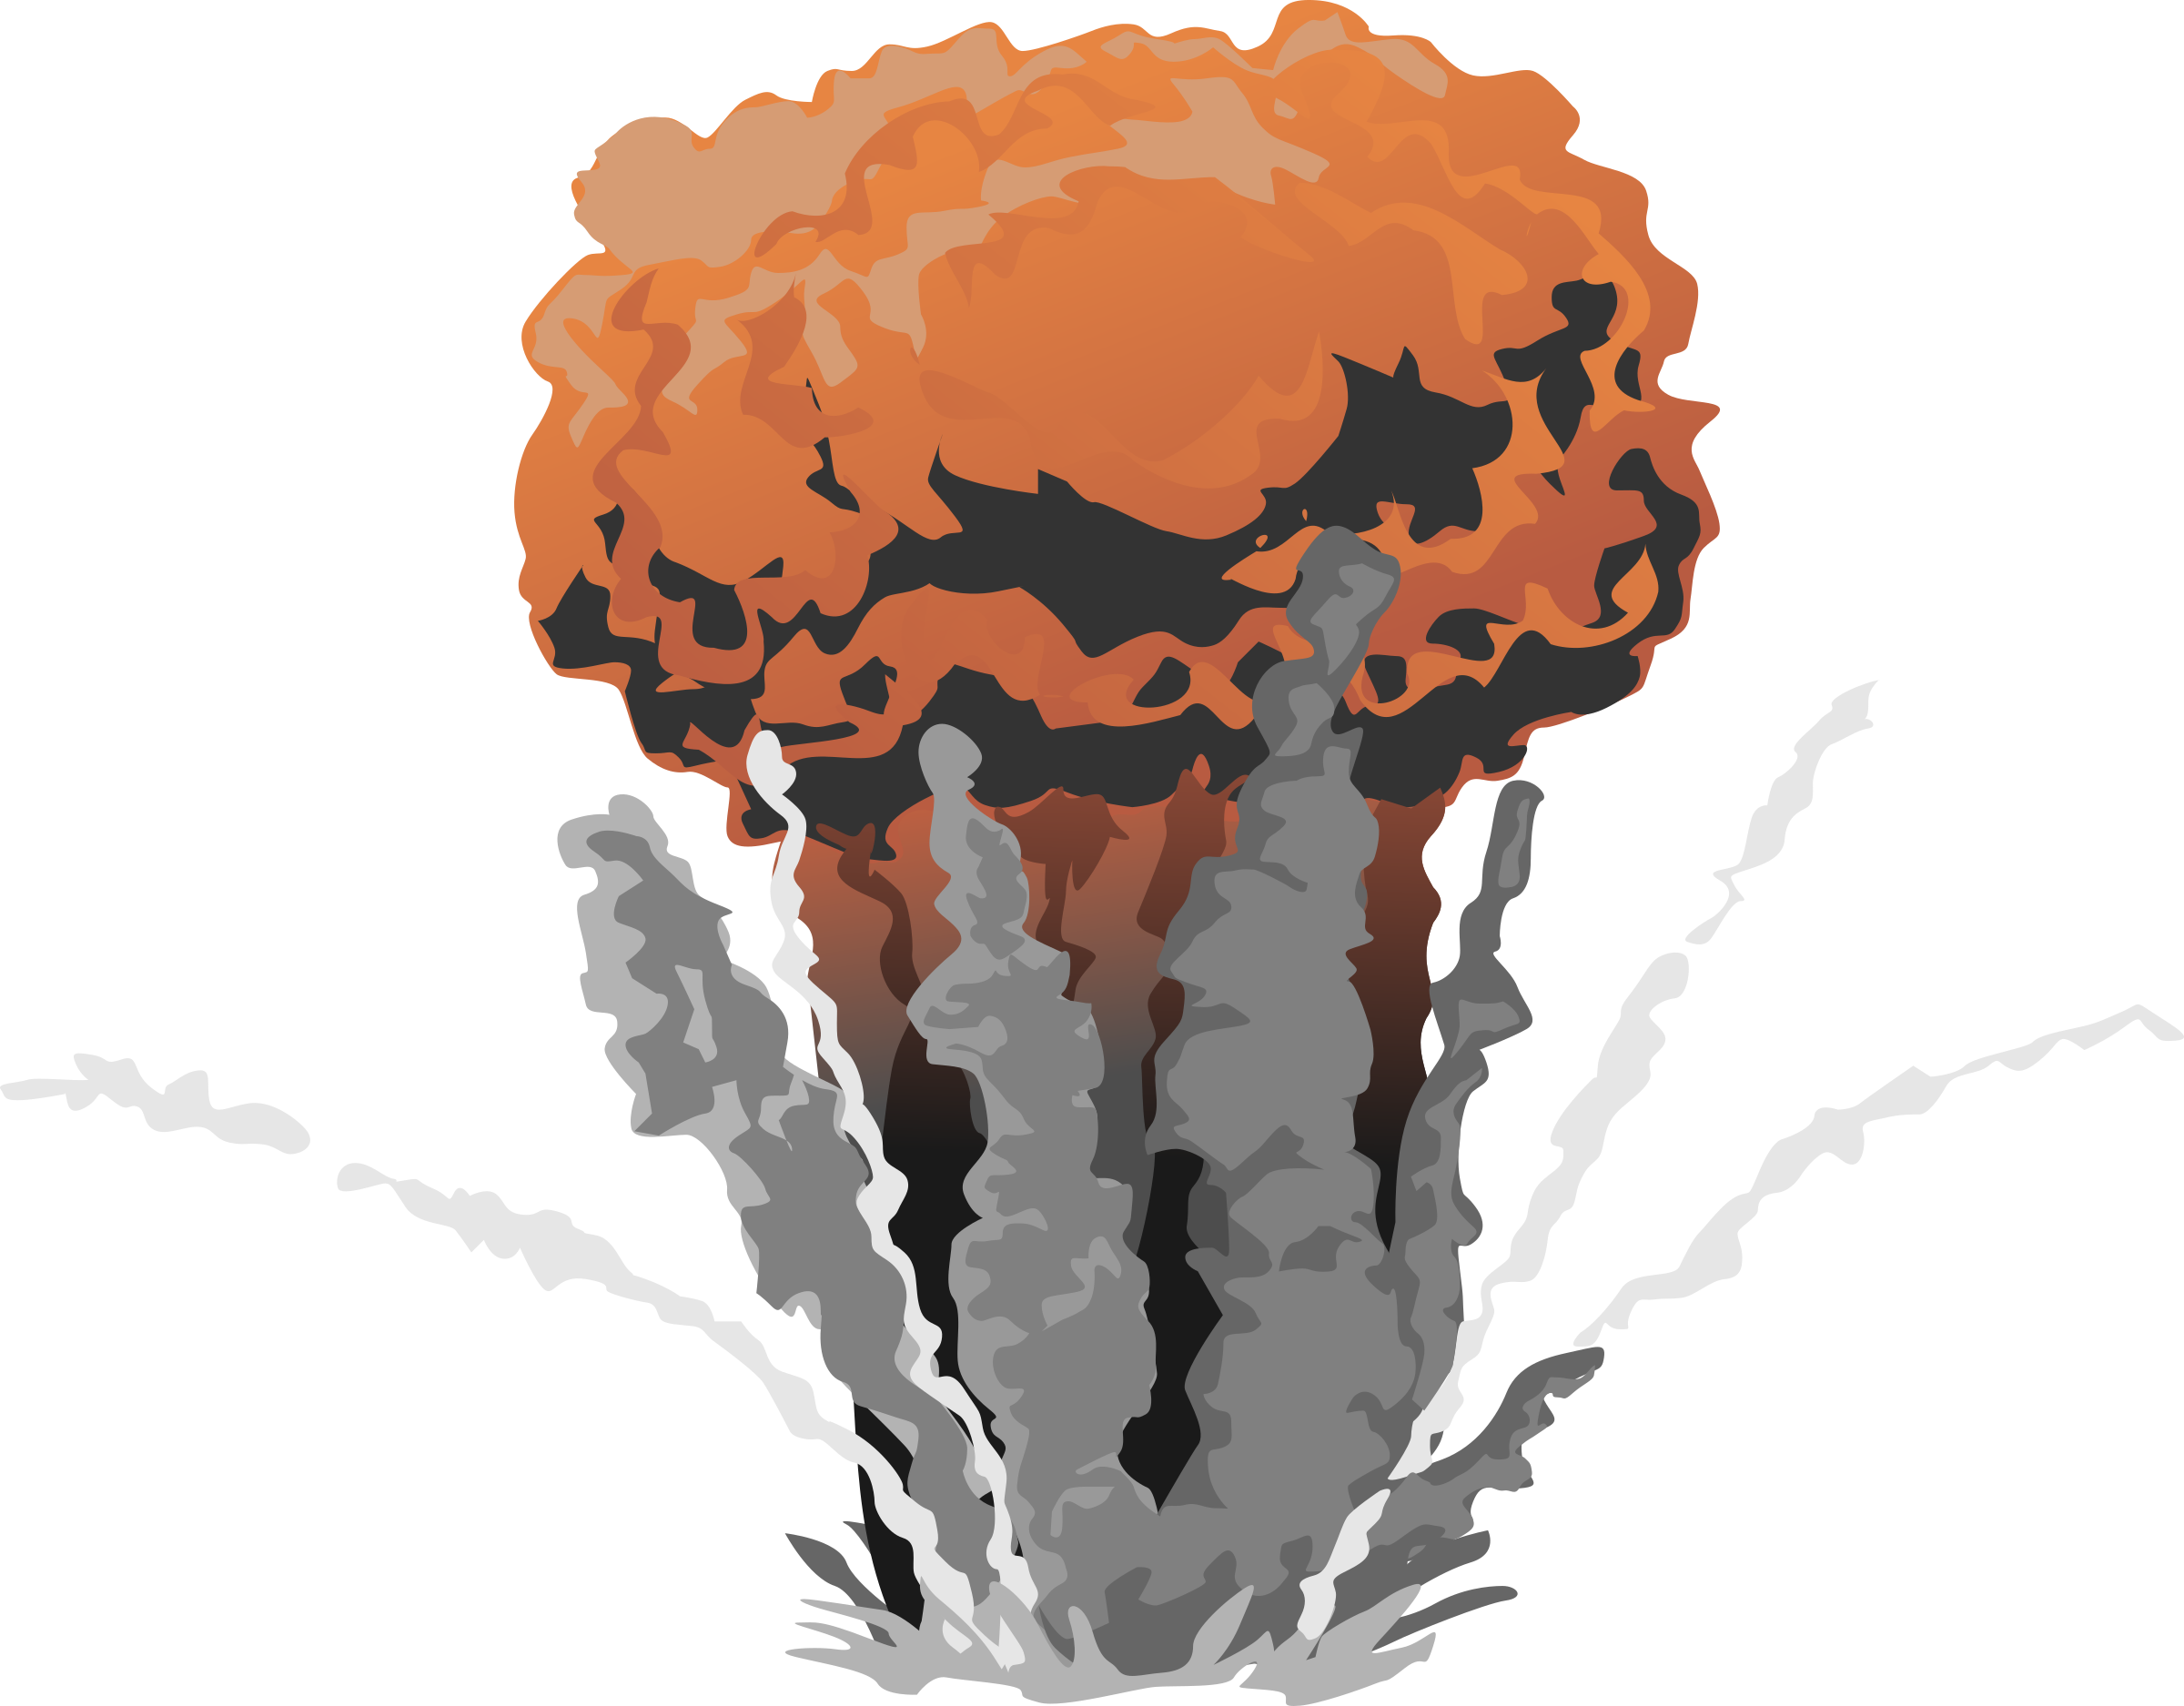 Explosion png images nuclera. Transparent explosions pdf clipart stock